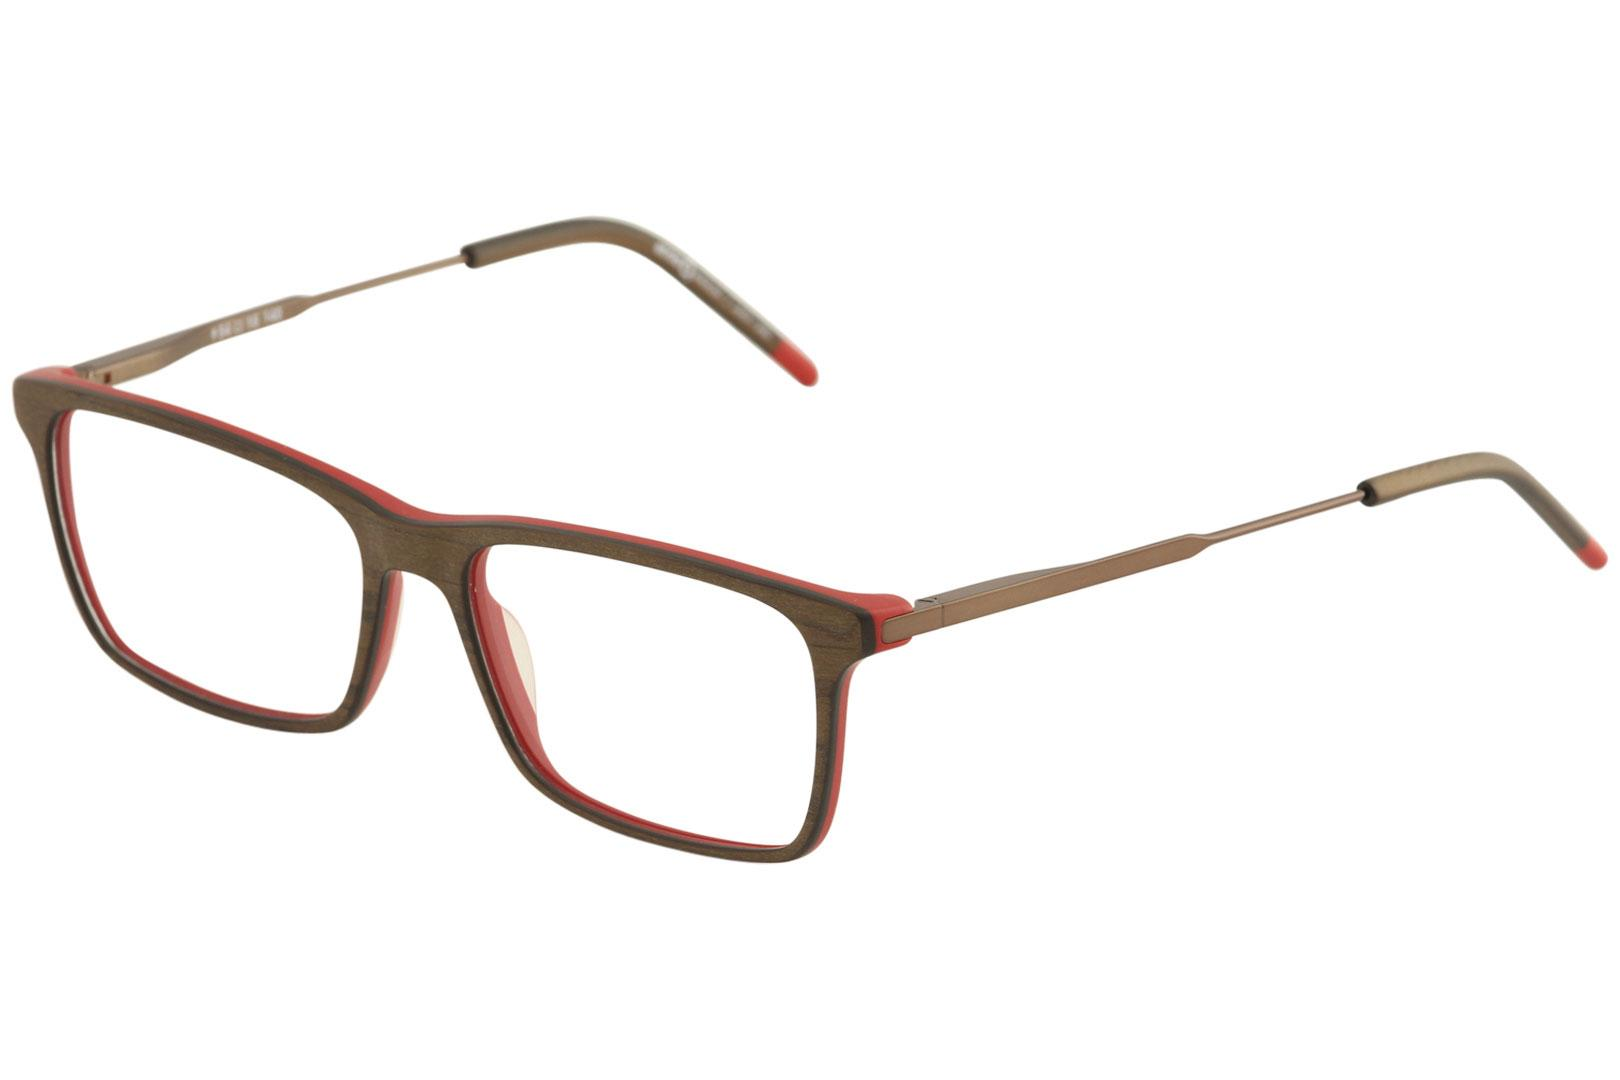 Image of Etnia Barcelona Men's Eyeglasses Jasper Full Rim Optical Frame - Brown/Red   BRRD - Lens 56 Bridge 16 Temple 140mm